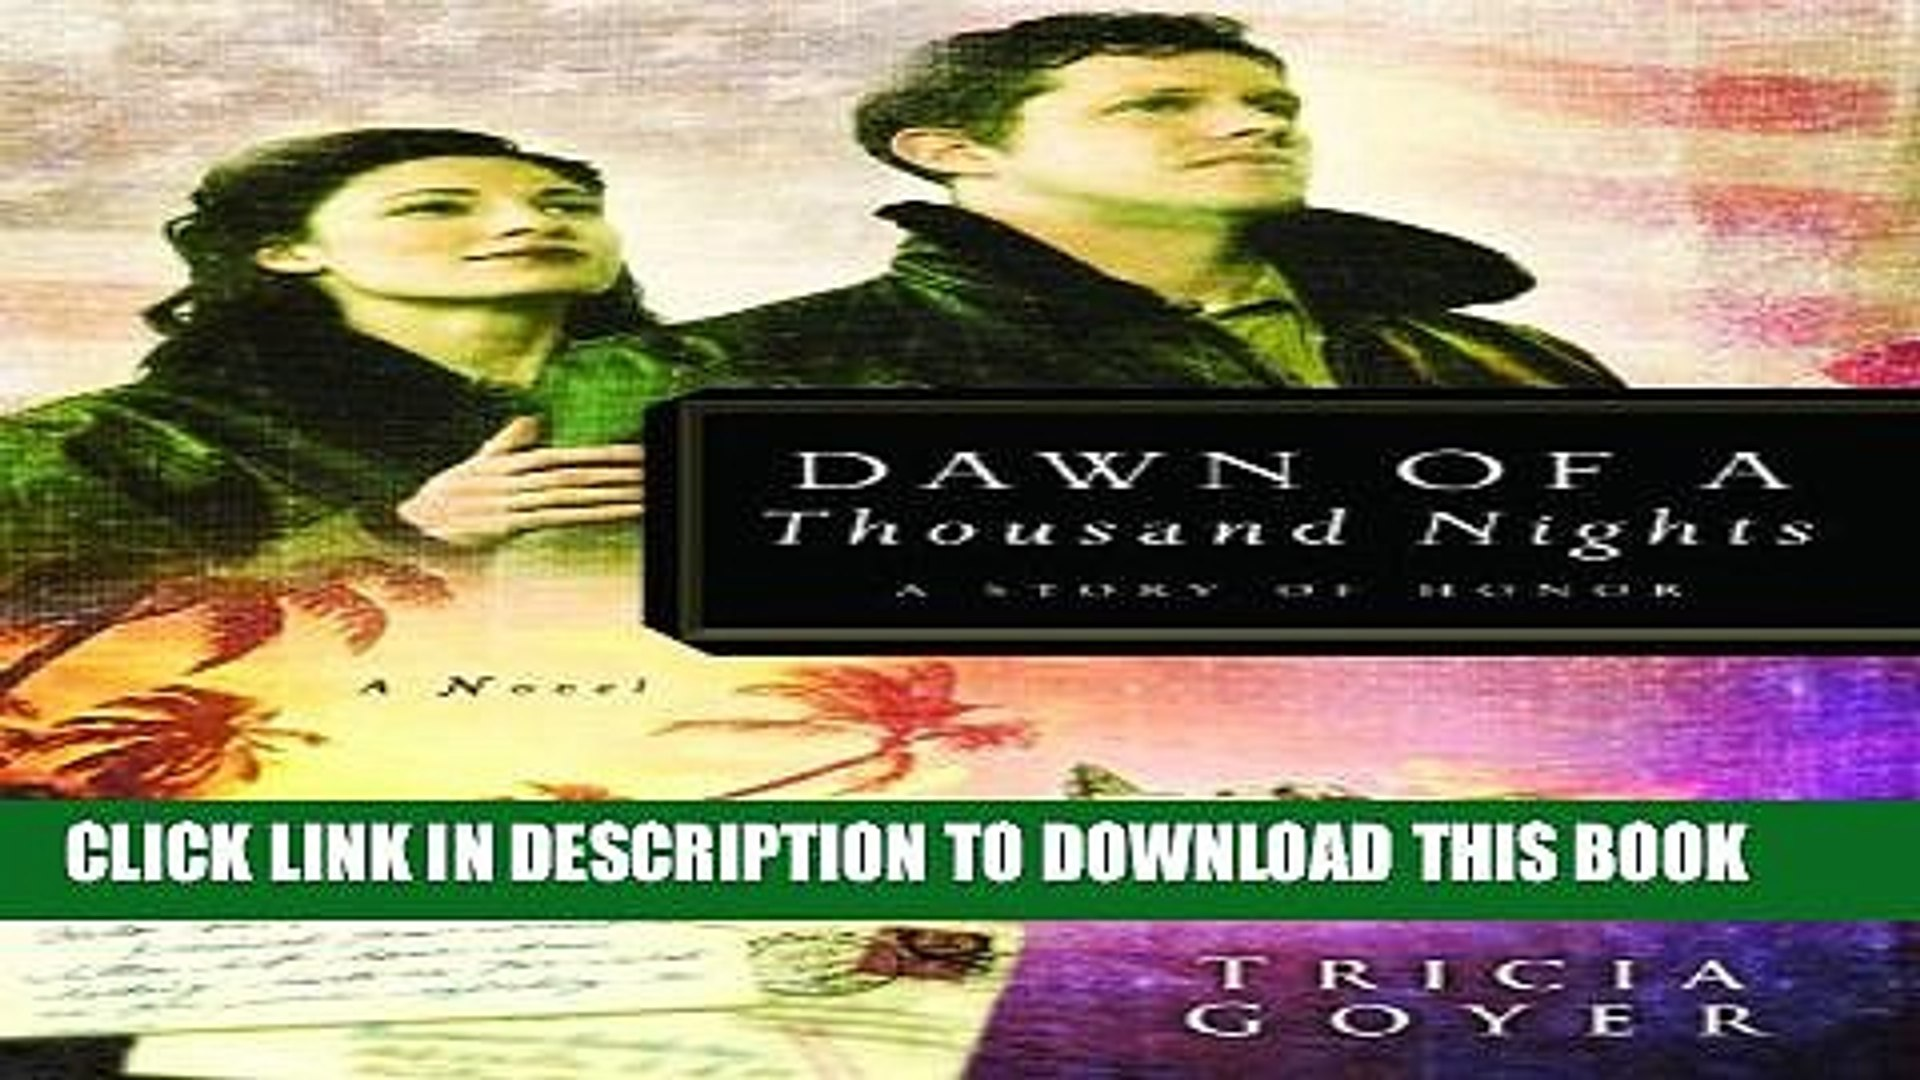 [PDF] Dawn of a Thousand Nights: A Story of Honor (The Liberator Series, Book 2) Full Collection